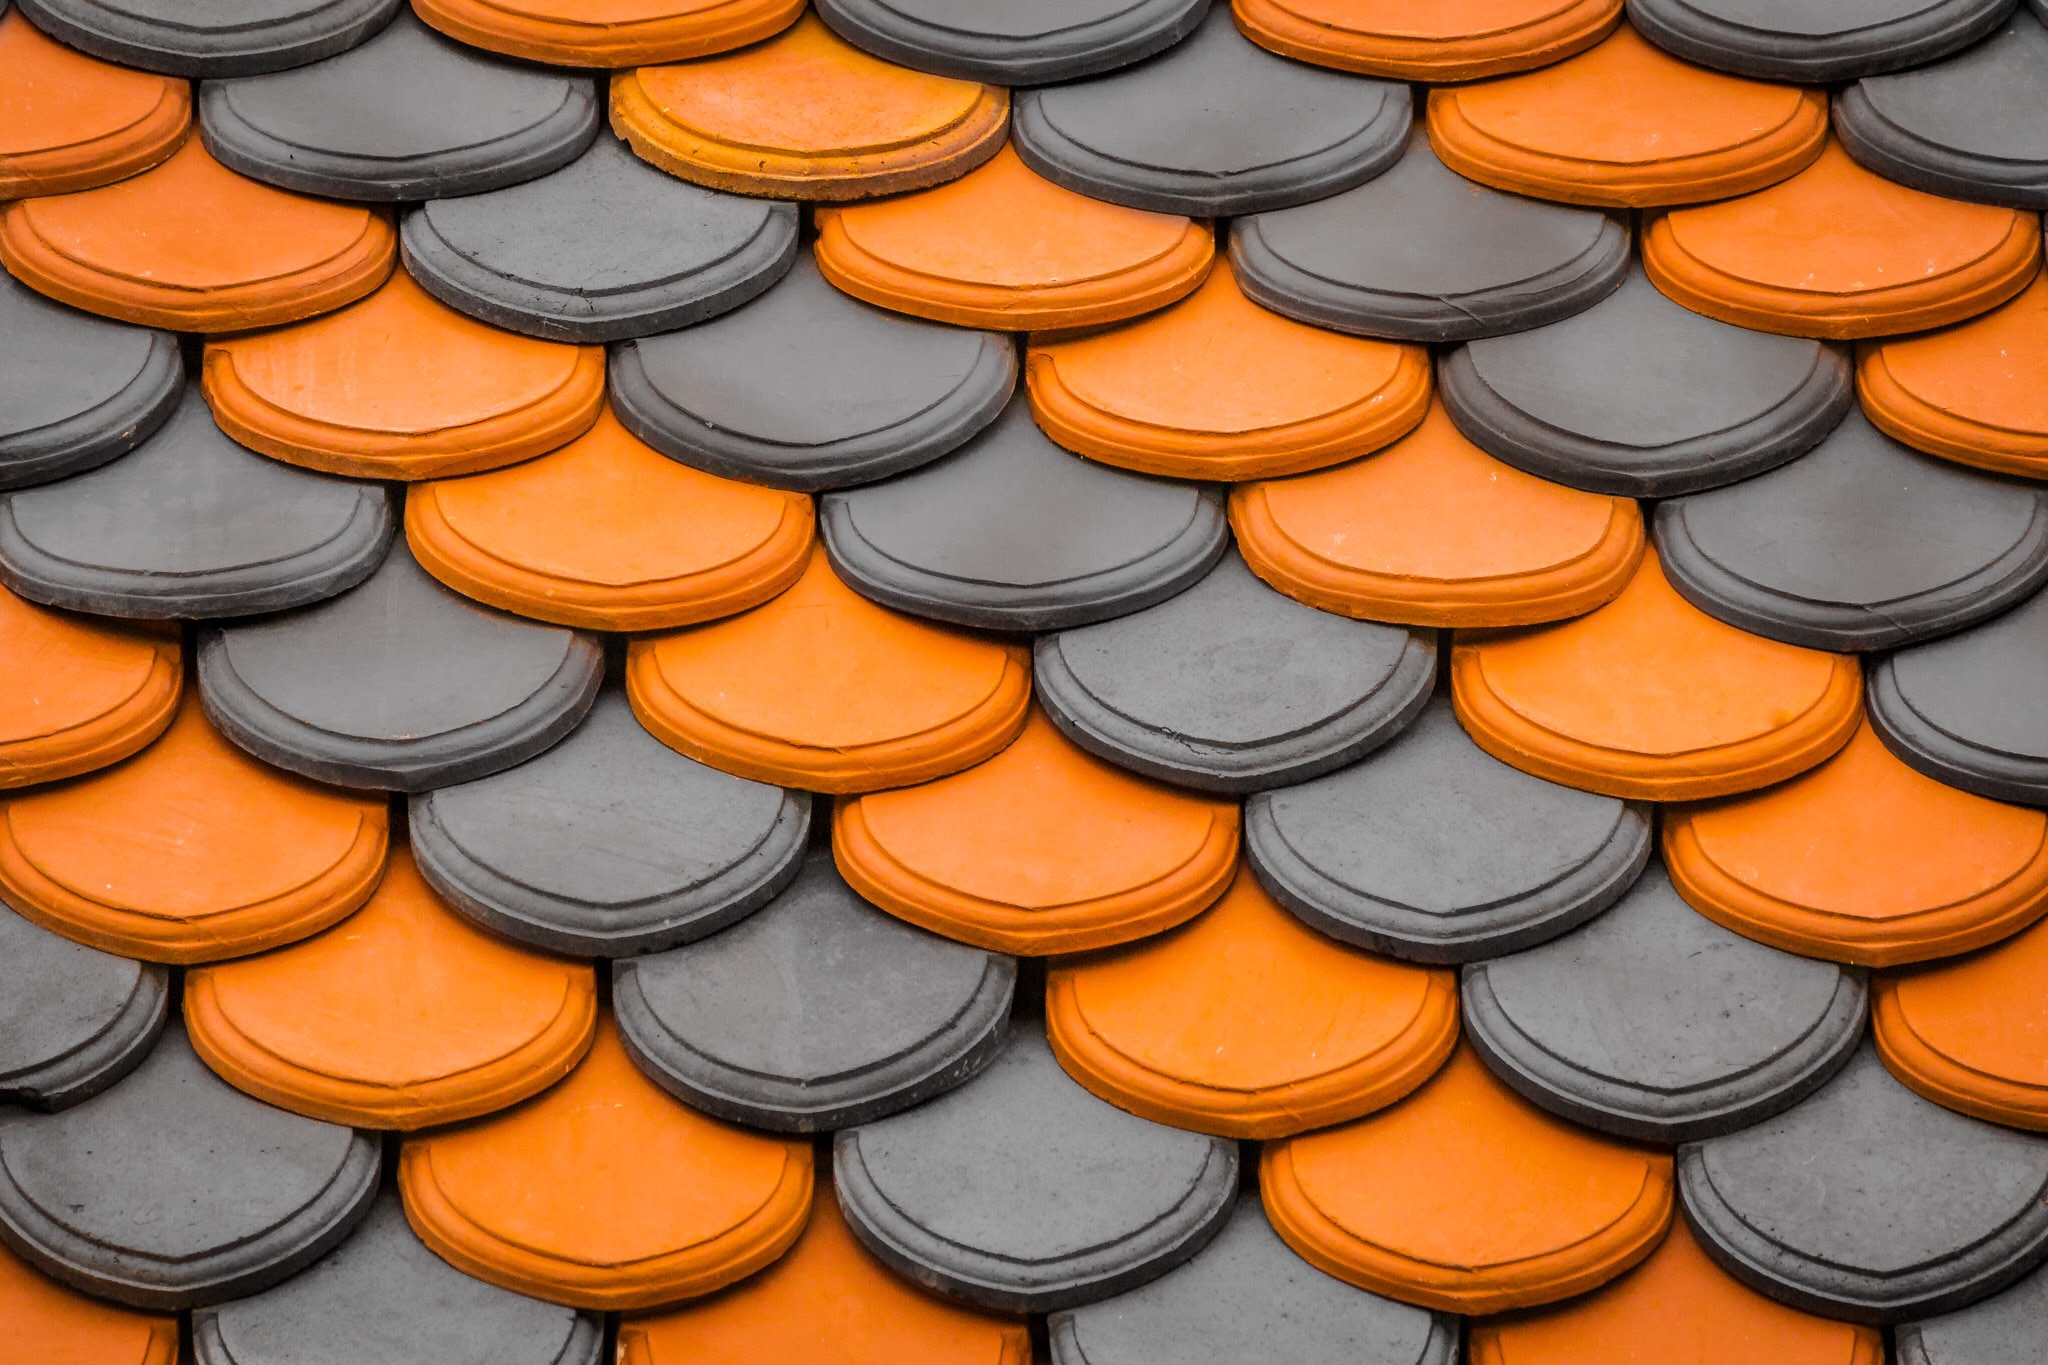 Roof tiles, Chideock - construction photography in Dorset by Rick McEvoy